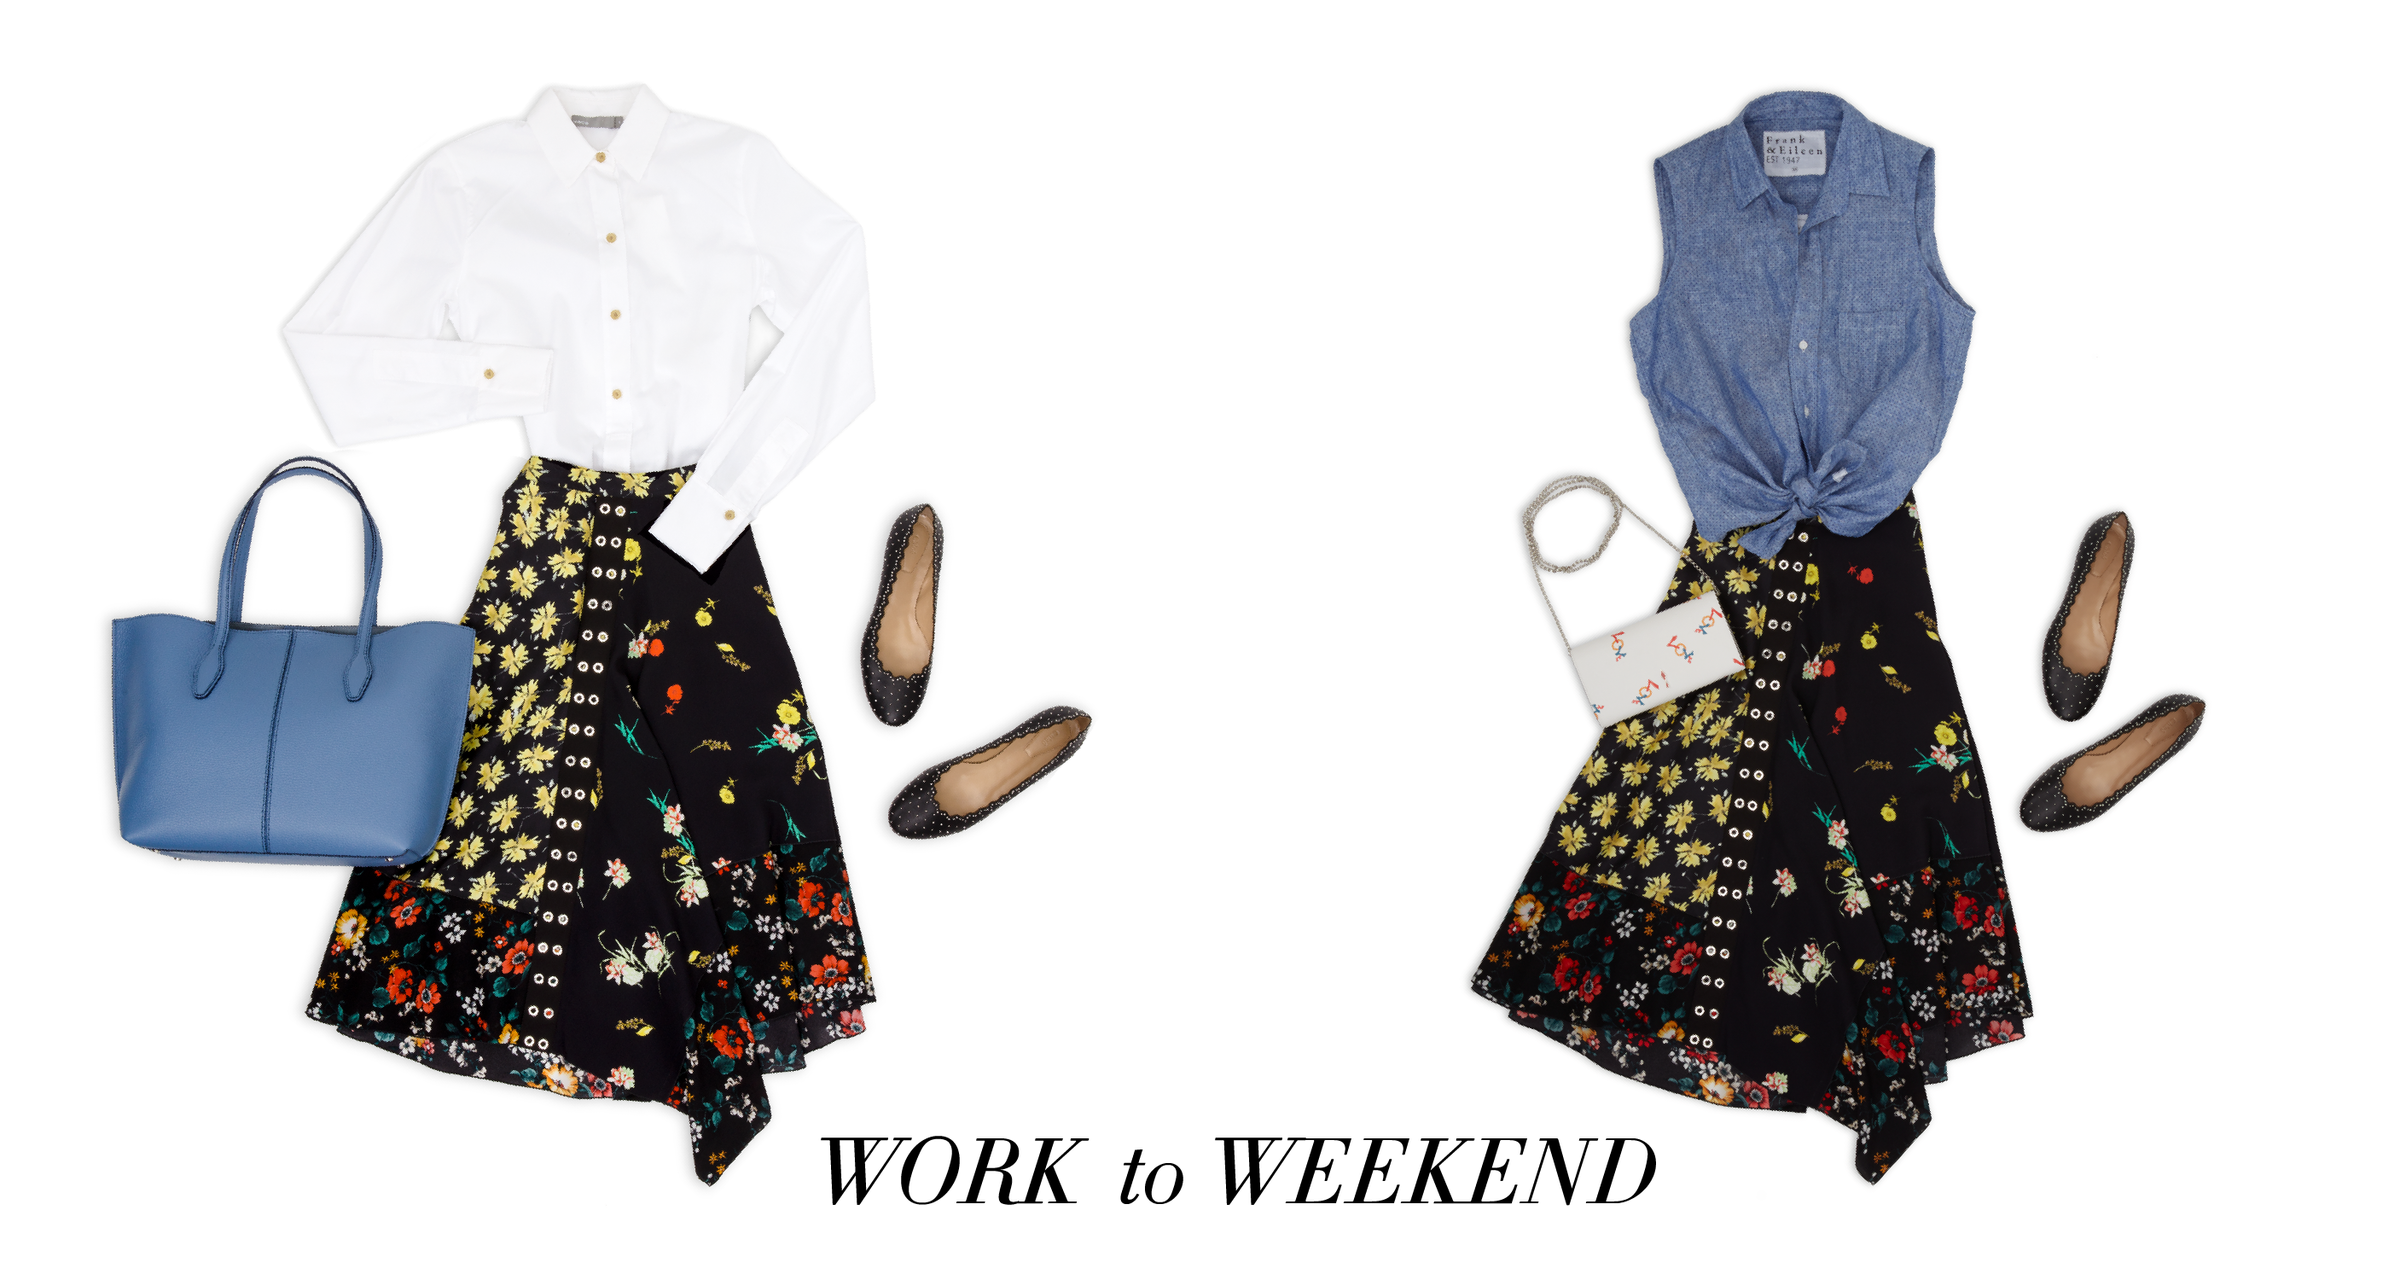 Double Duty - Work to Weekend Outfits